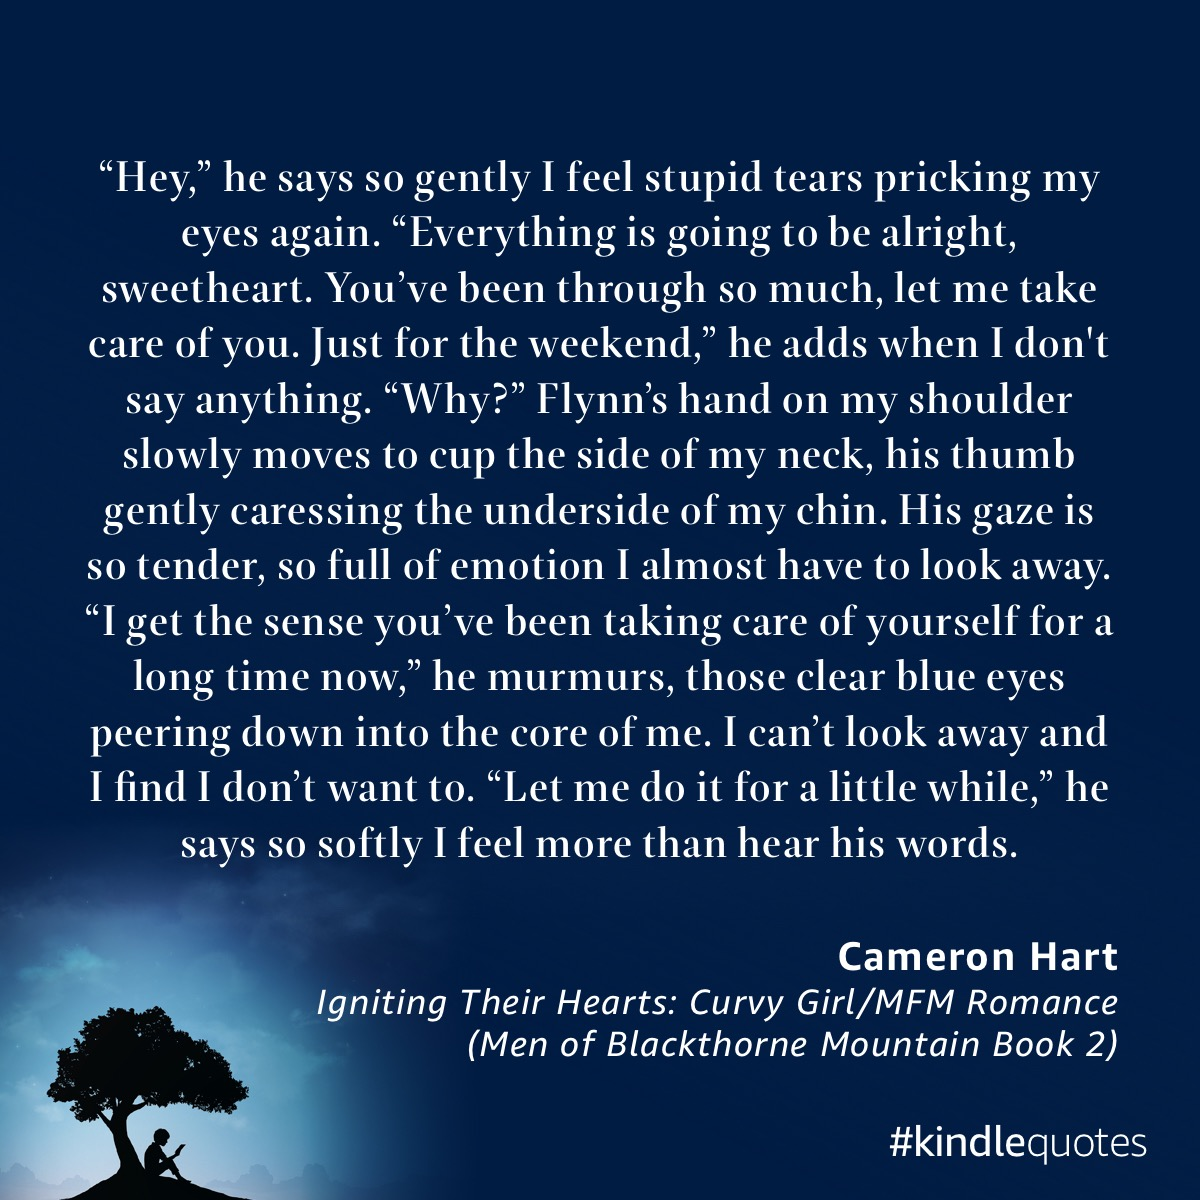 Book quote Cameron Hart